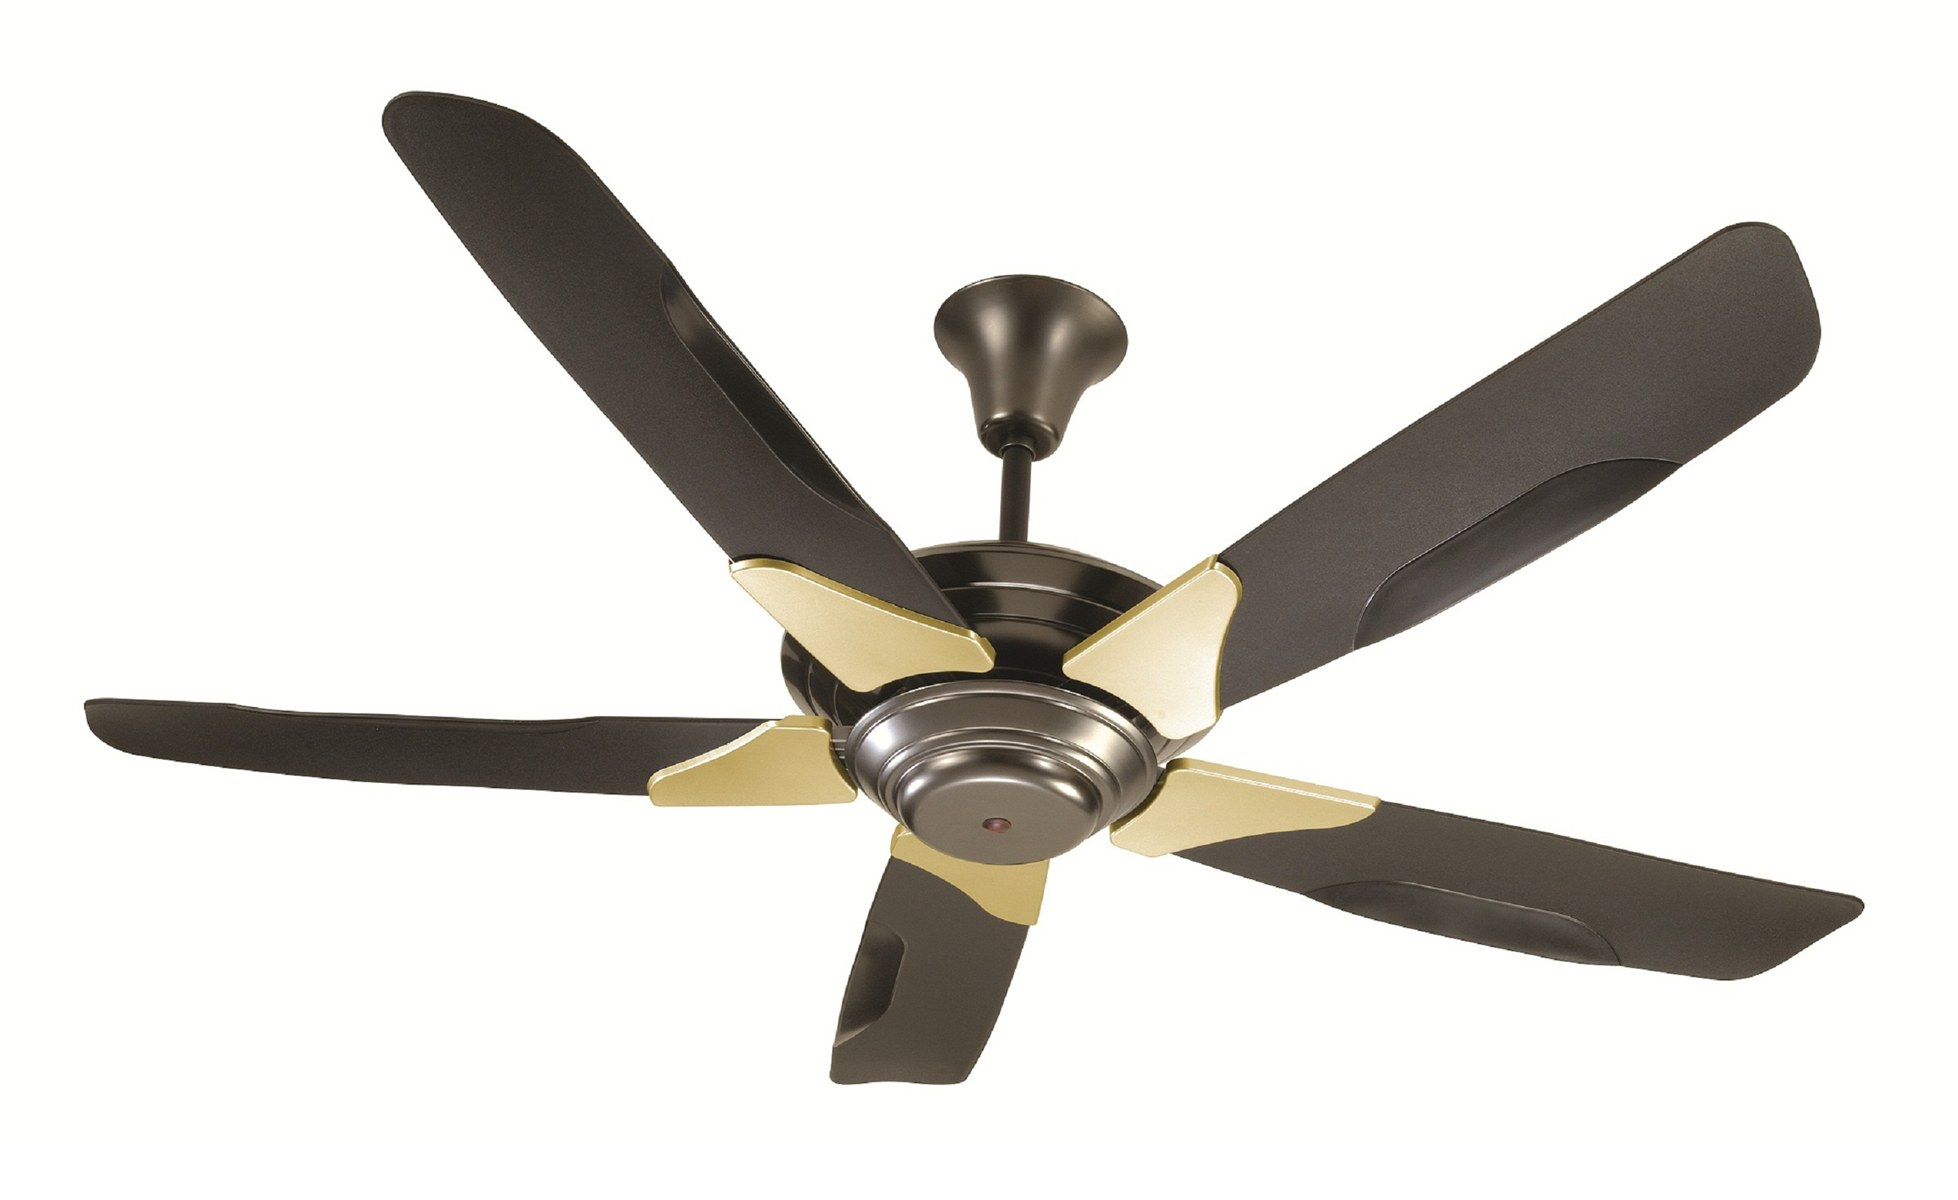 whoosh-ceiling-fan-photo-10